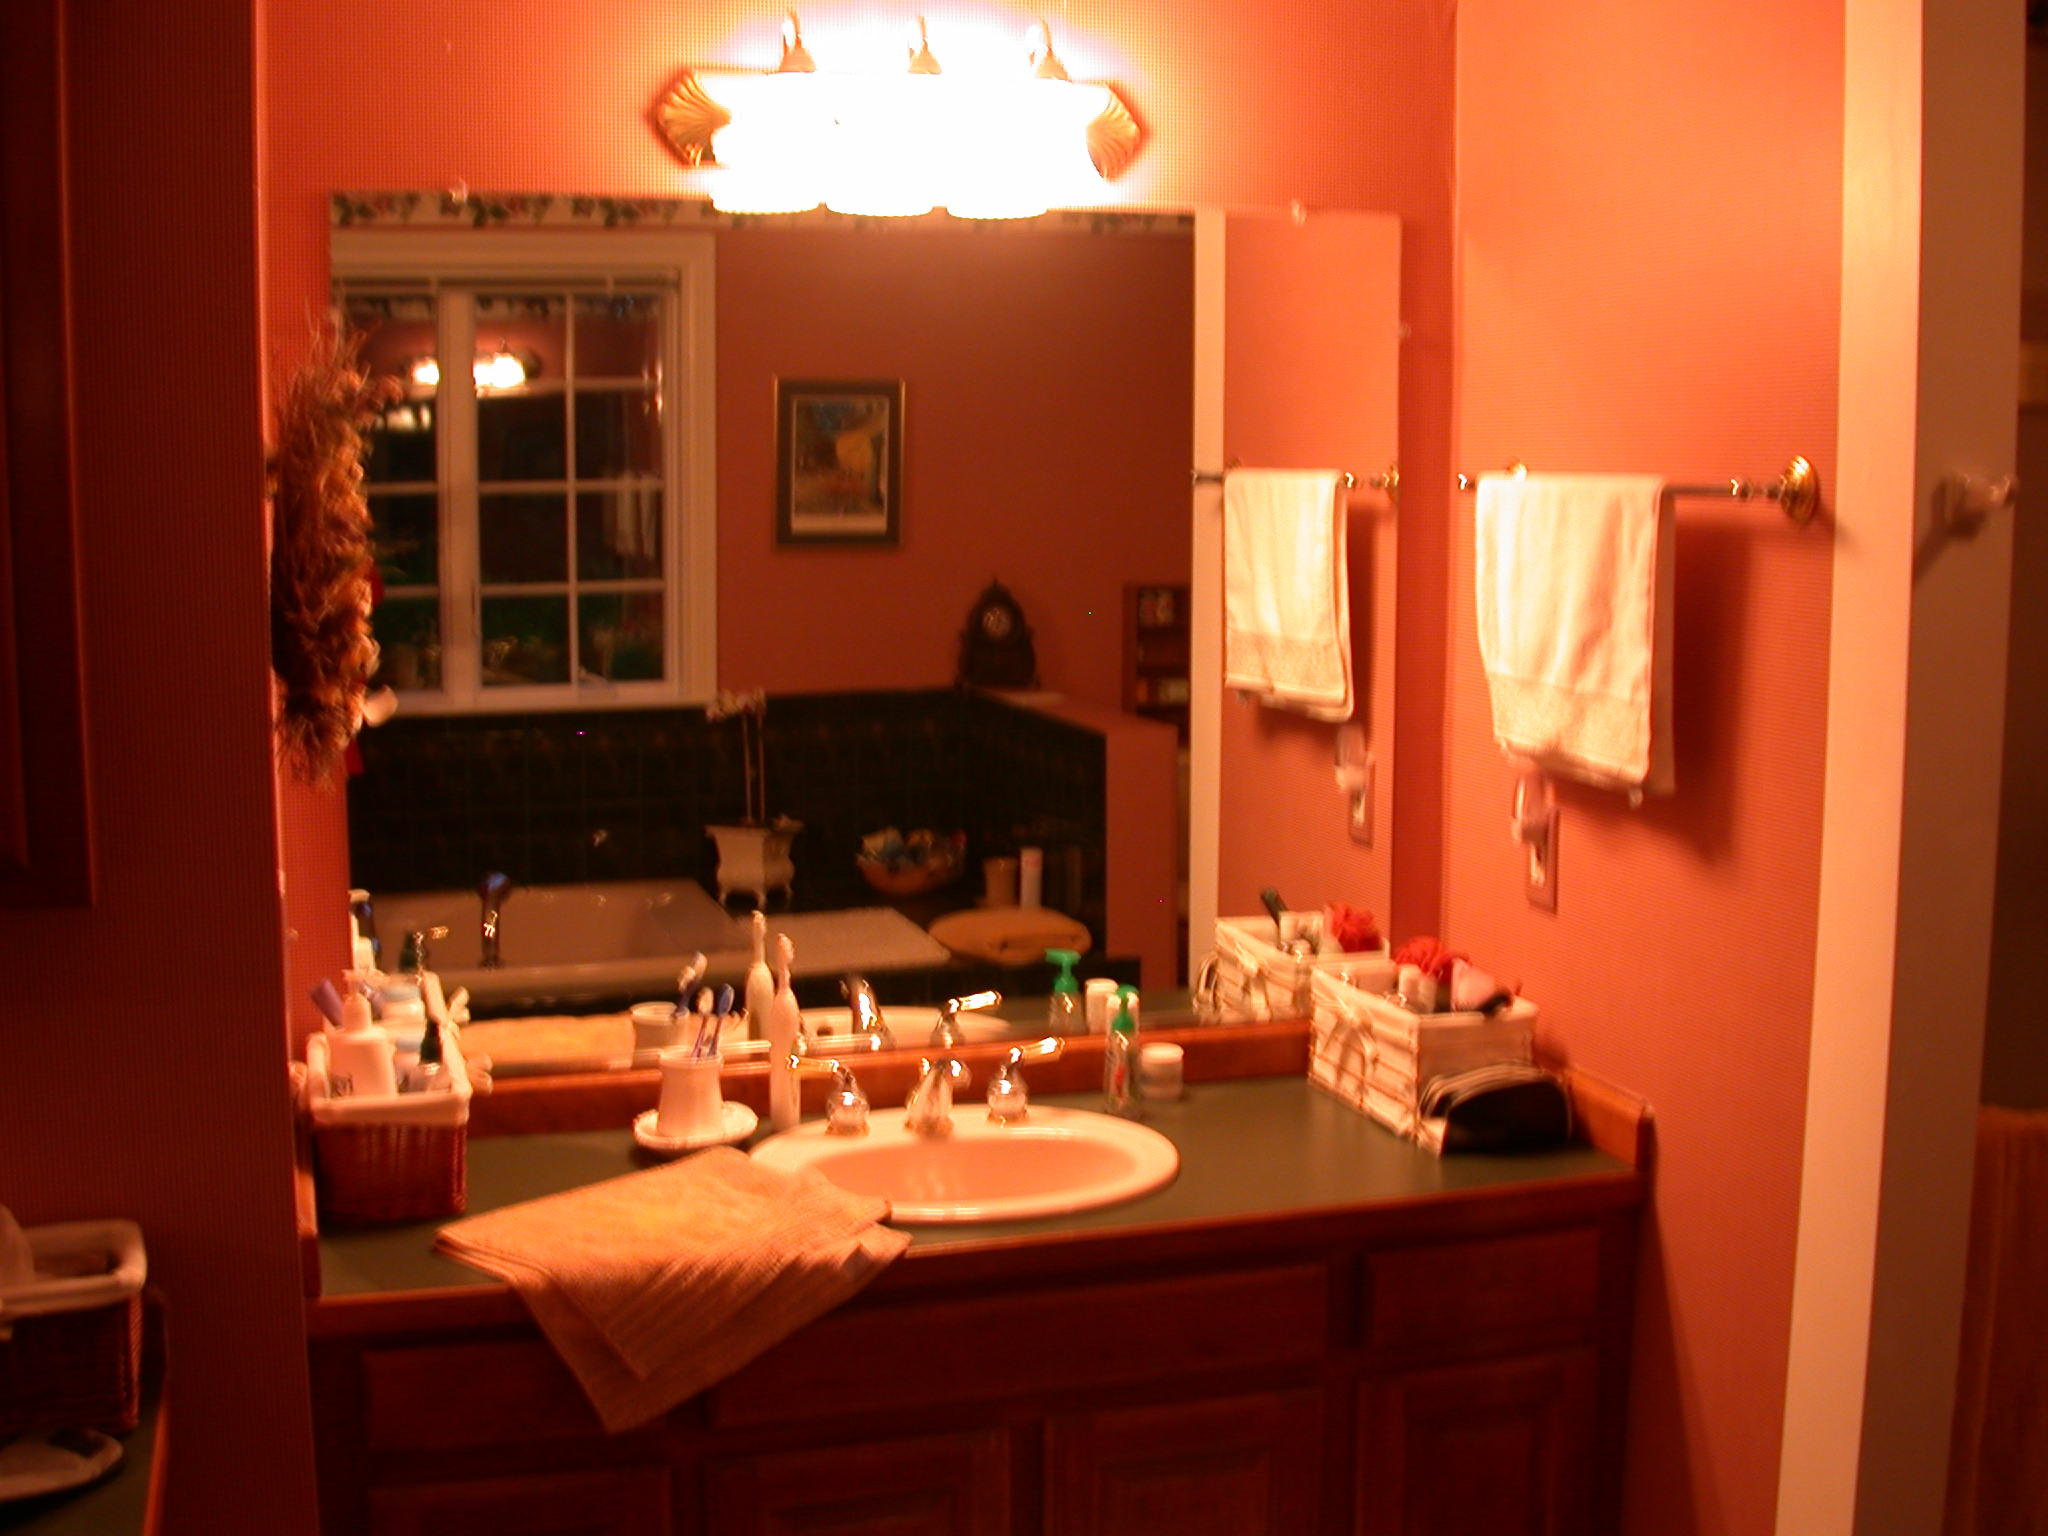 BEFORE: GREEN & PINK VANITY AREA